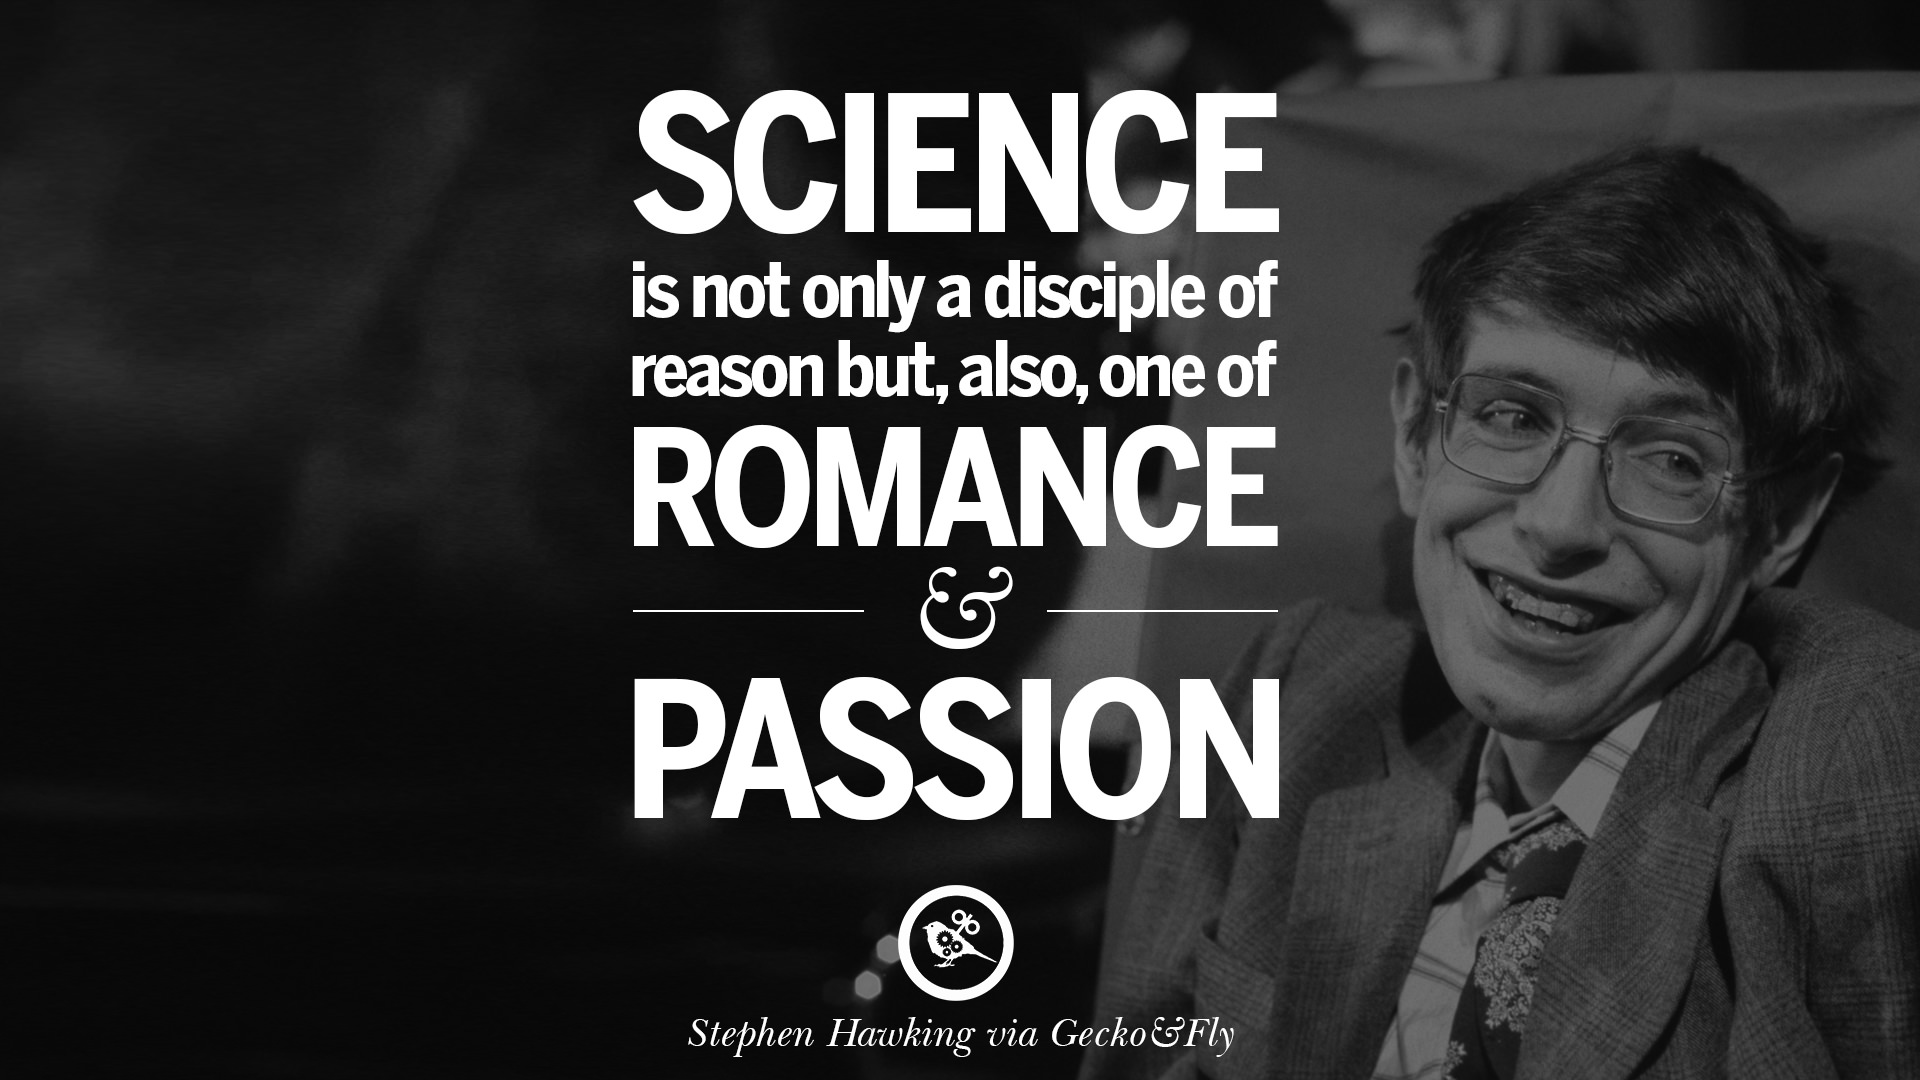 Stephen Hawking Quotes | 16 Quotes By Stephen Hawking On The Theory Of Everything From God To